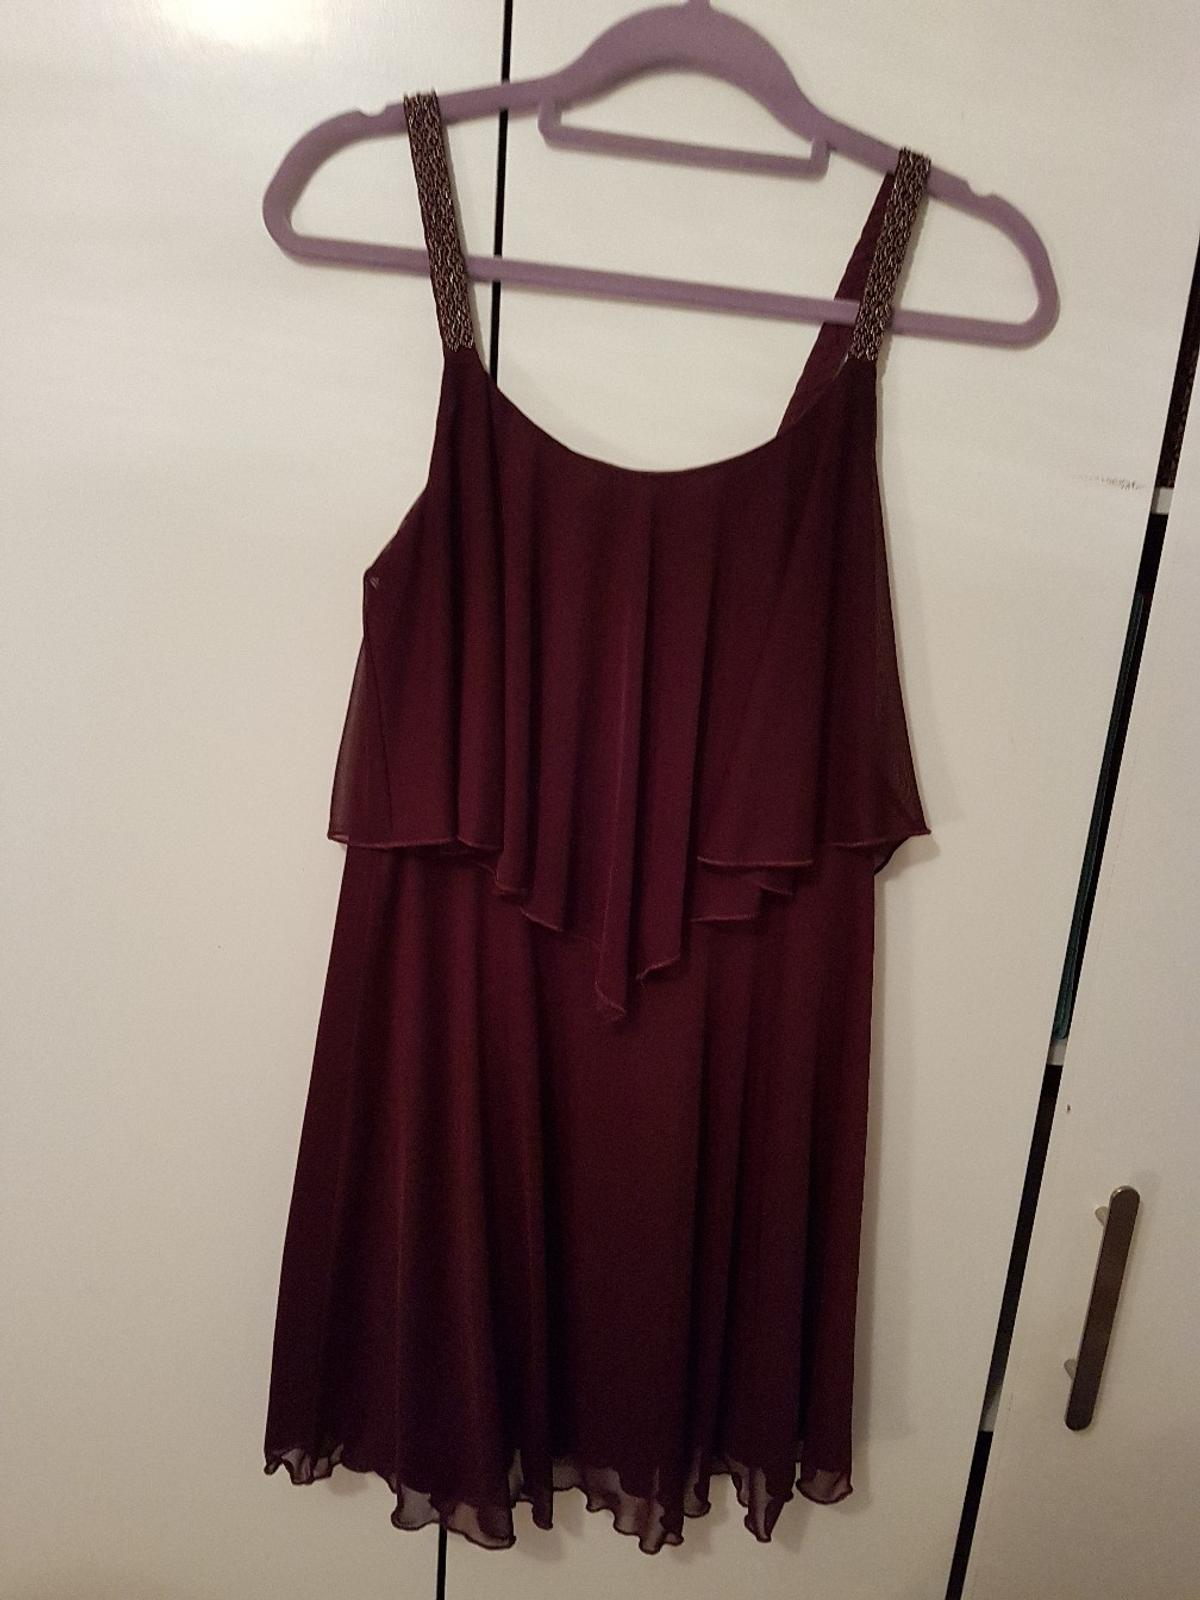 Purple new look dress with beaded straps. Size 12. Never worn, perfect condition. Can deliver.